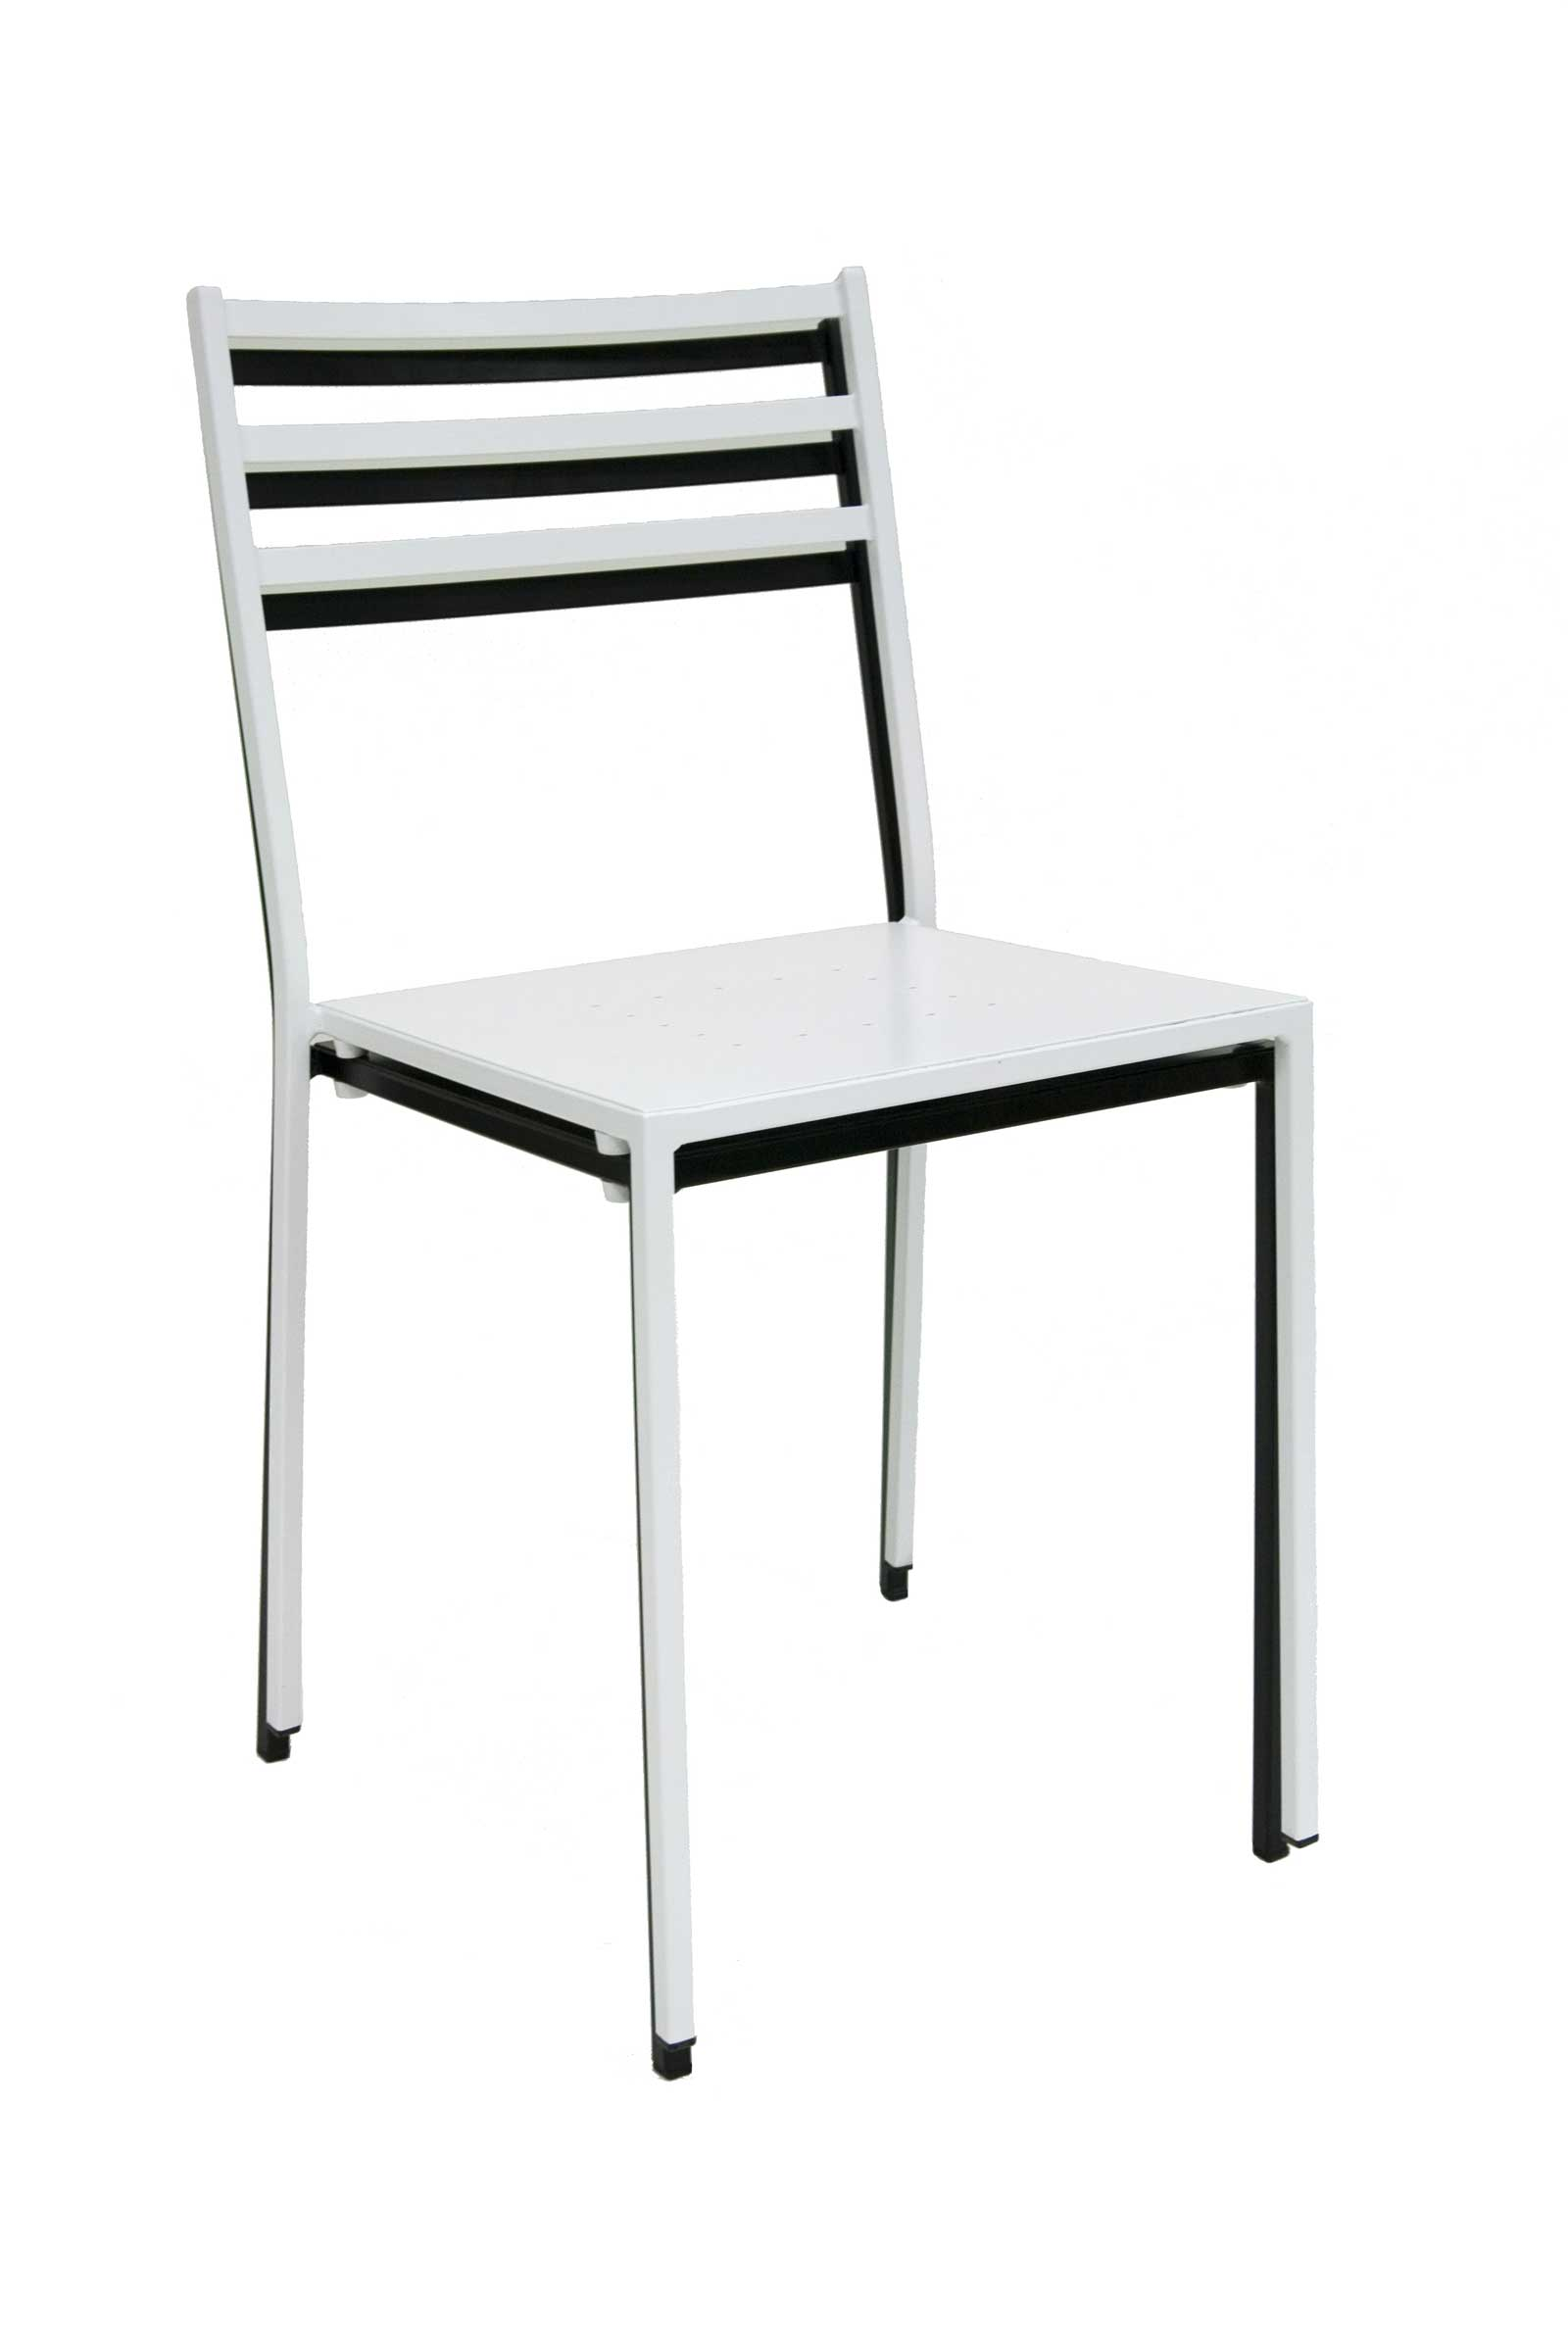 Tally Stk Black White Metal Stacking Chairs